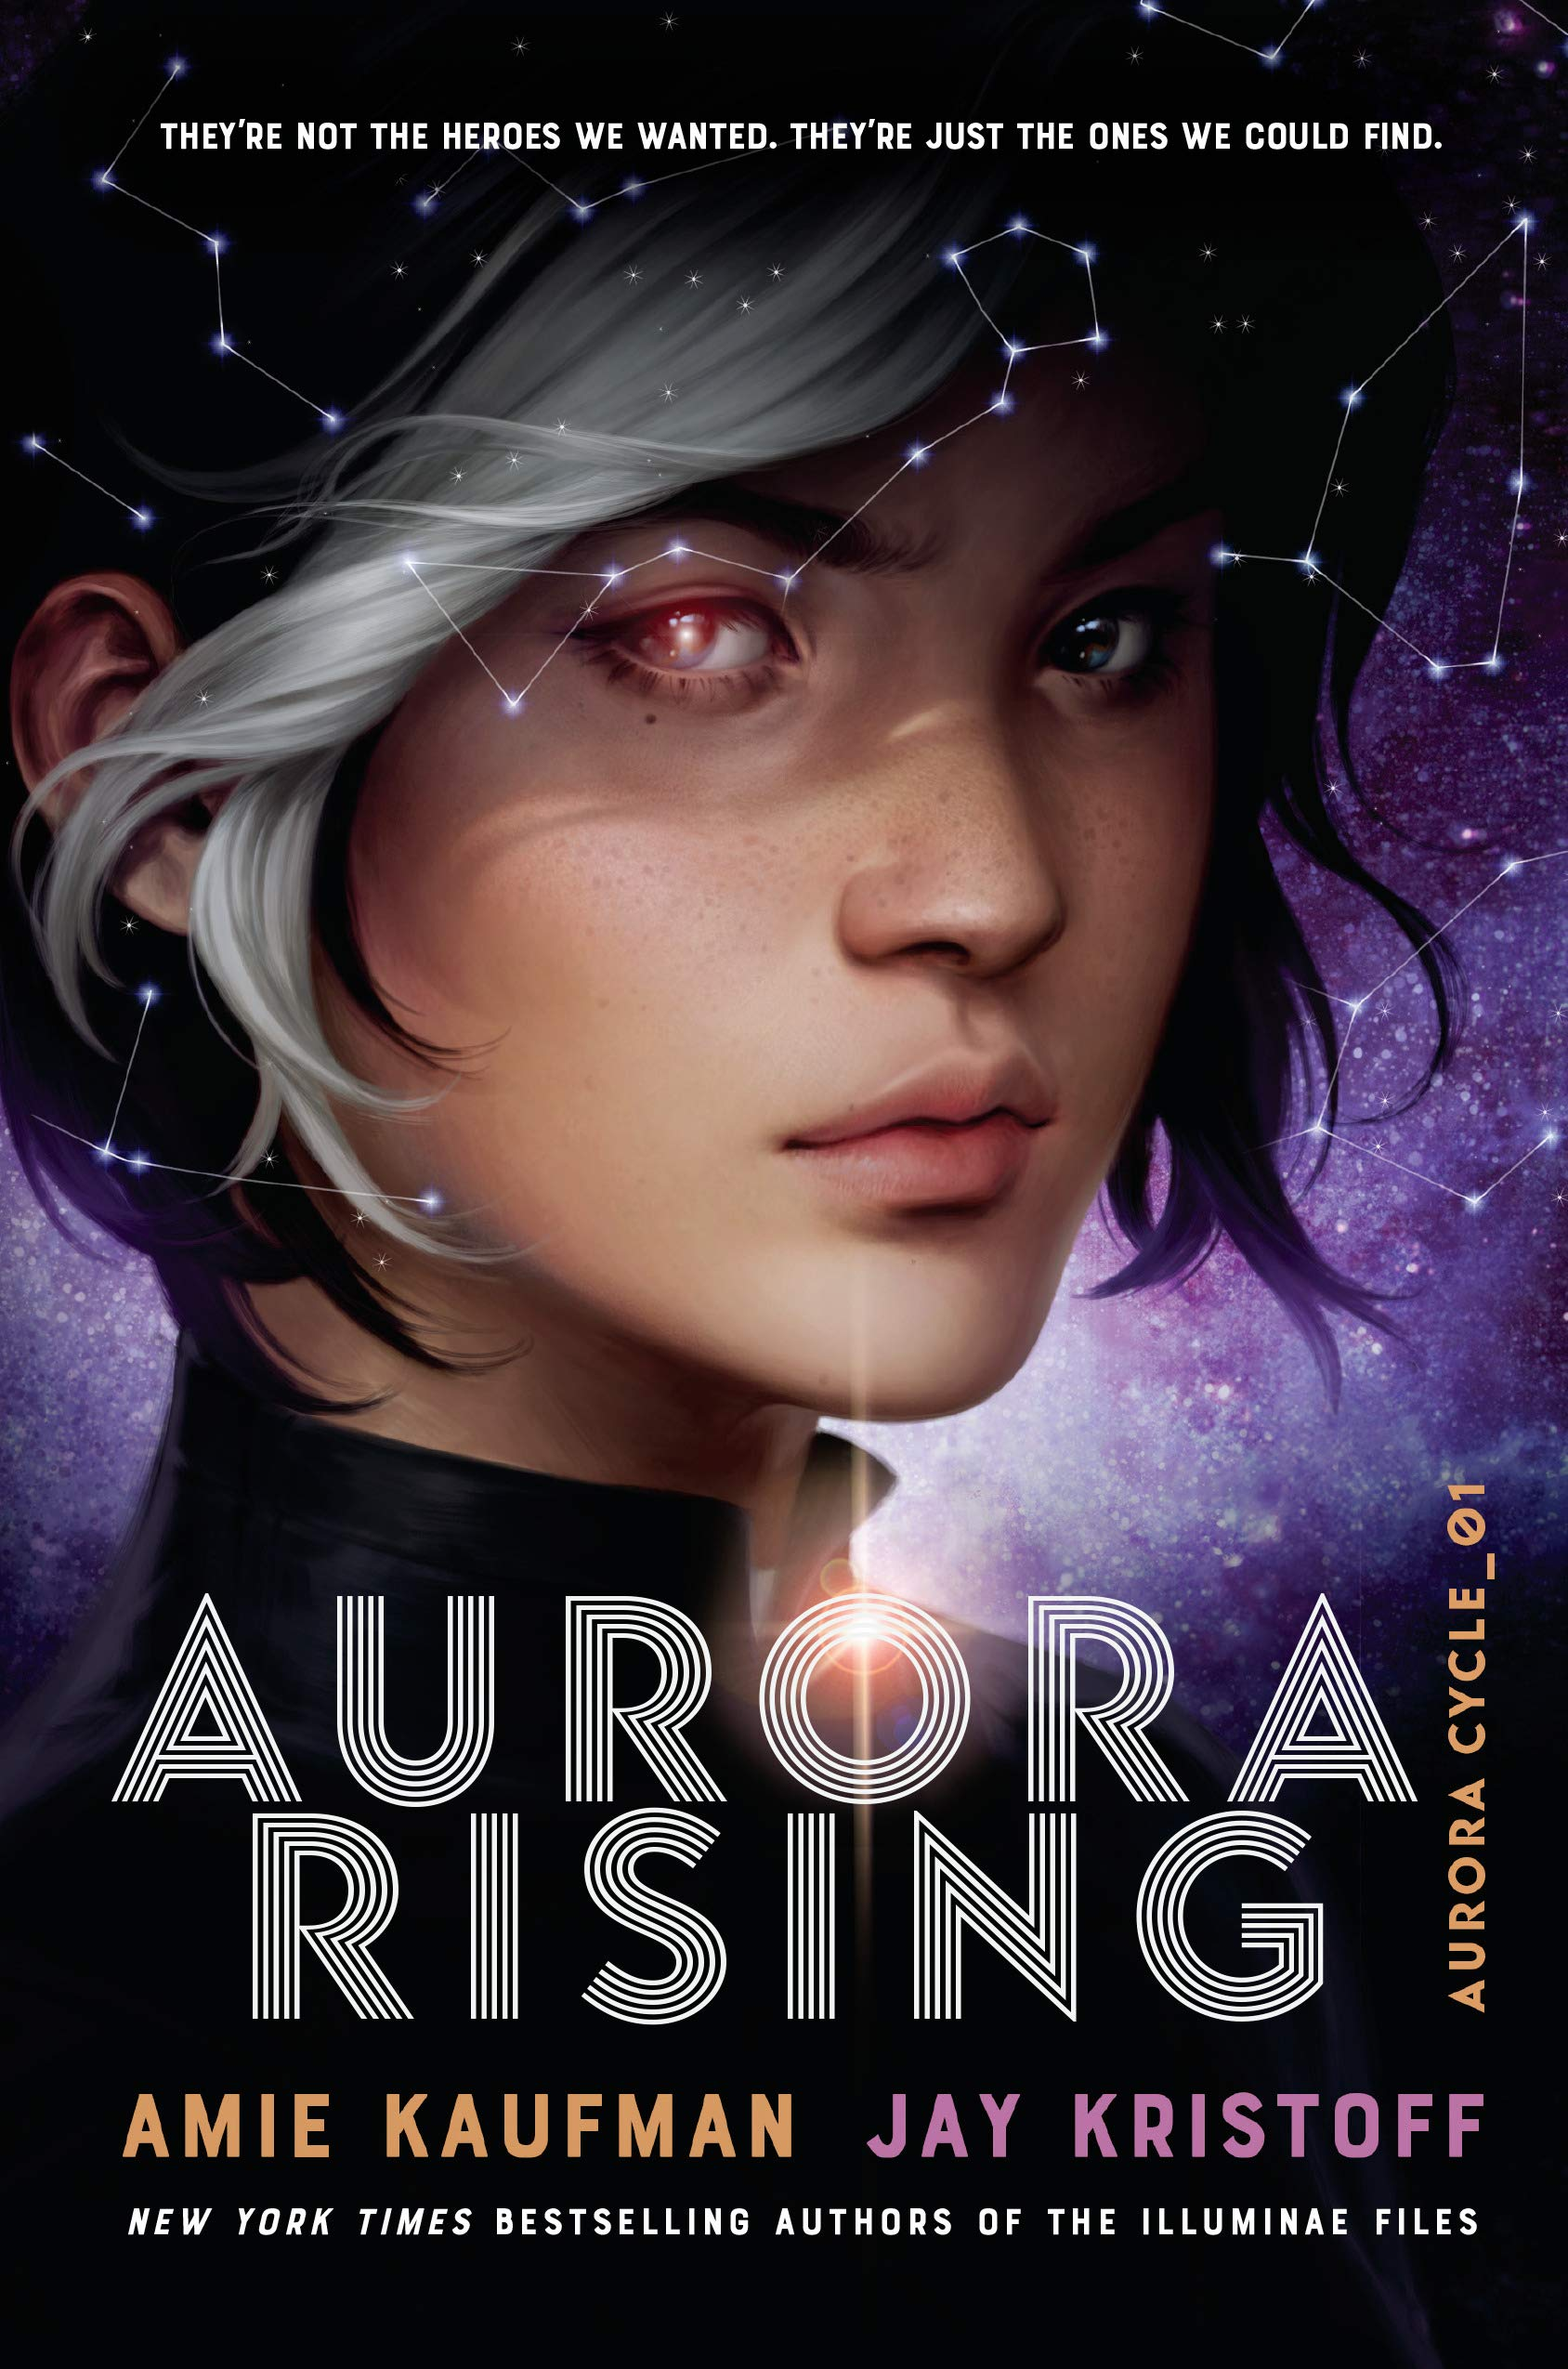 """Written by Amie Kaufman and Jay KristoffWith space travel, creatures from other planets, and cool blasters, this book reminded our teen testers of Star Wars. """"I liked that the alien species were from different cultures and we learned about how their world worked,"""" says William, an eighth grader."""